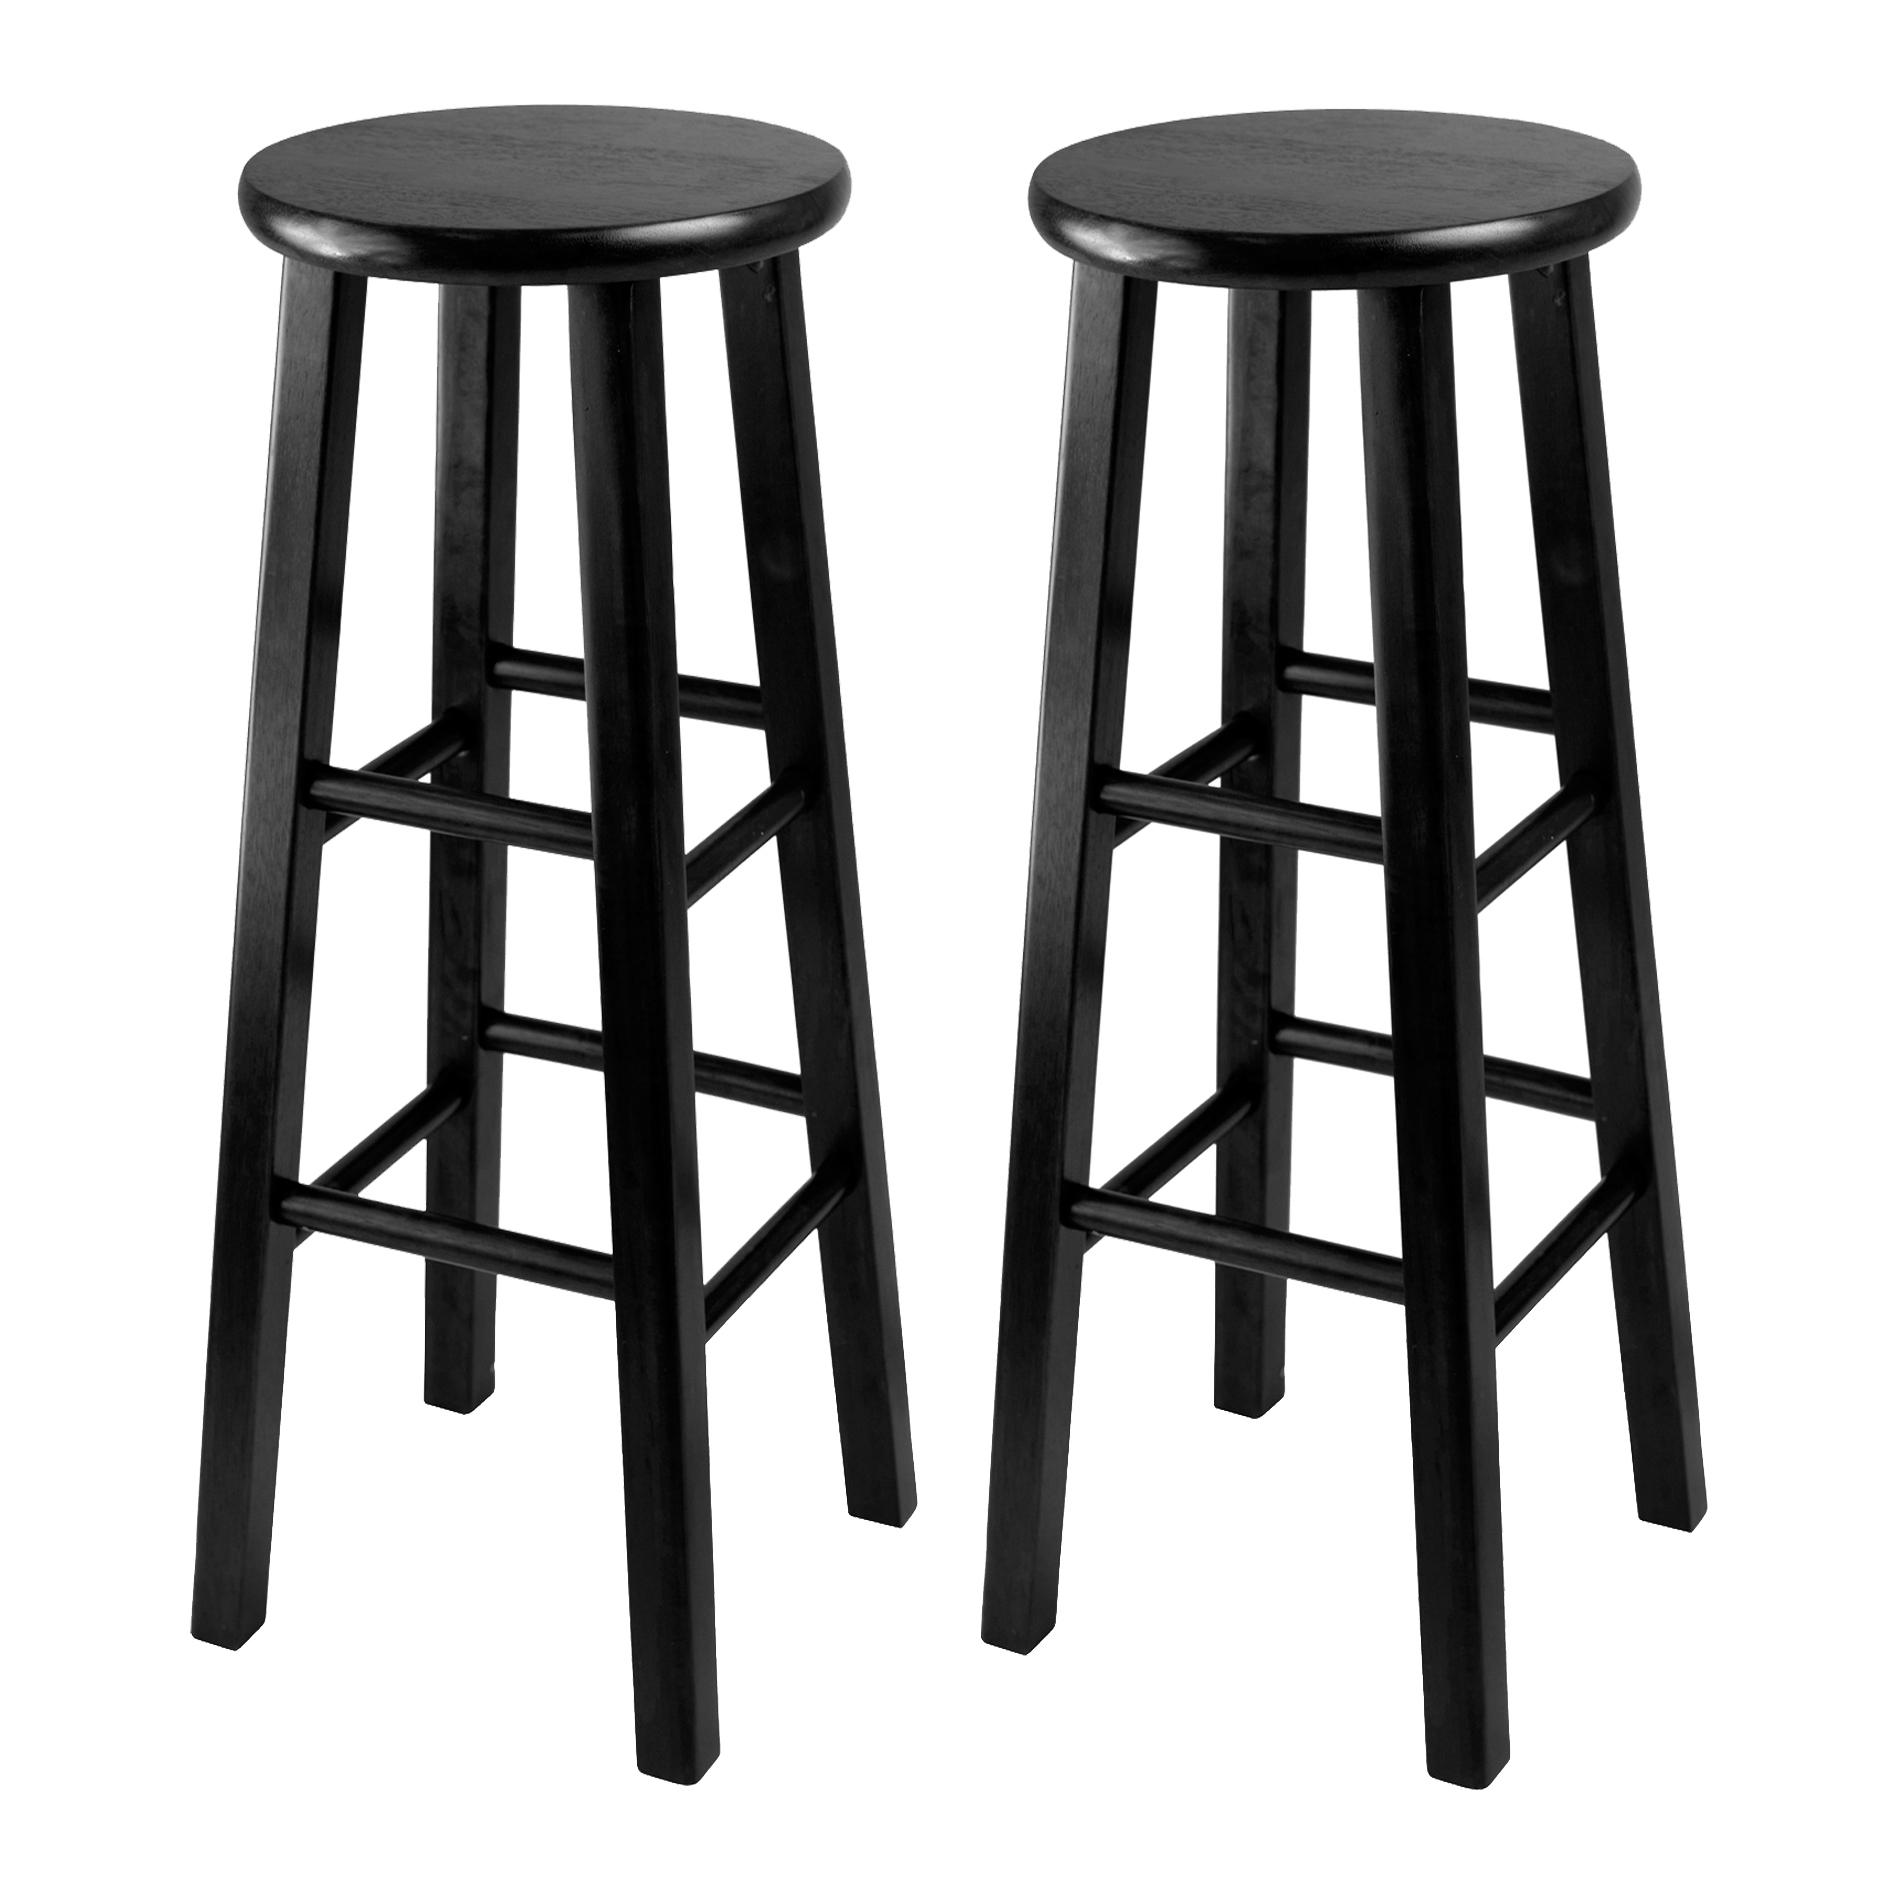 backs table ingolf go matchless metal originality top ikea chairs stools chair stool sets room with cool bar fabric pub backrest height dining rooms to